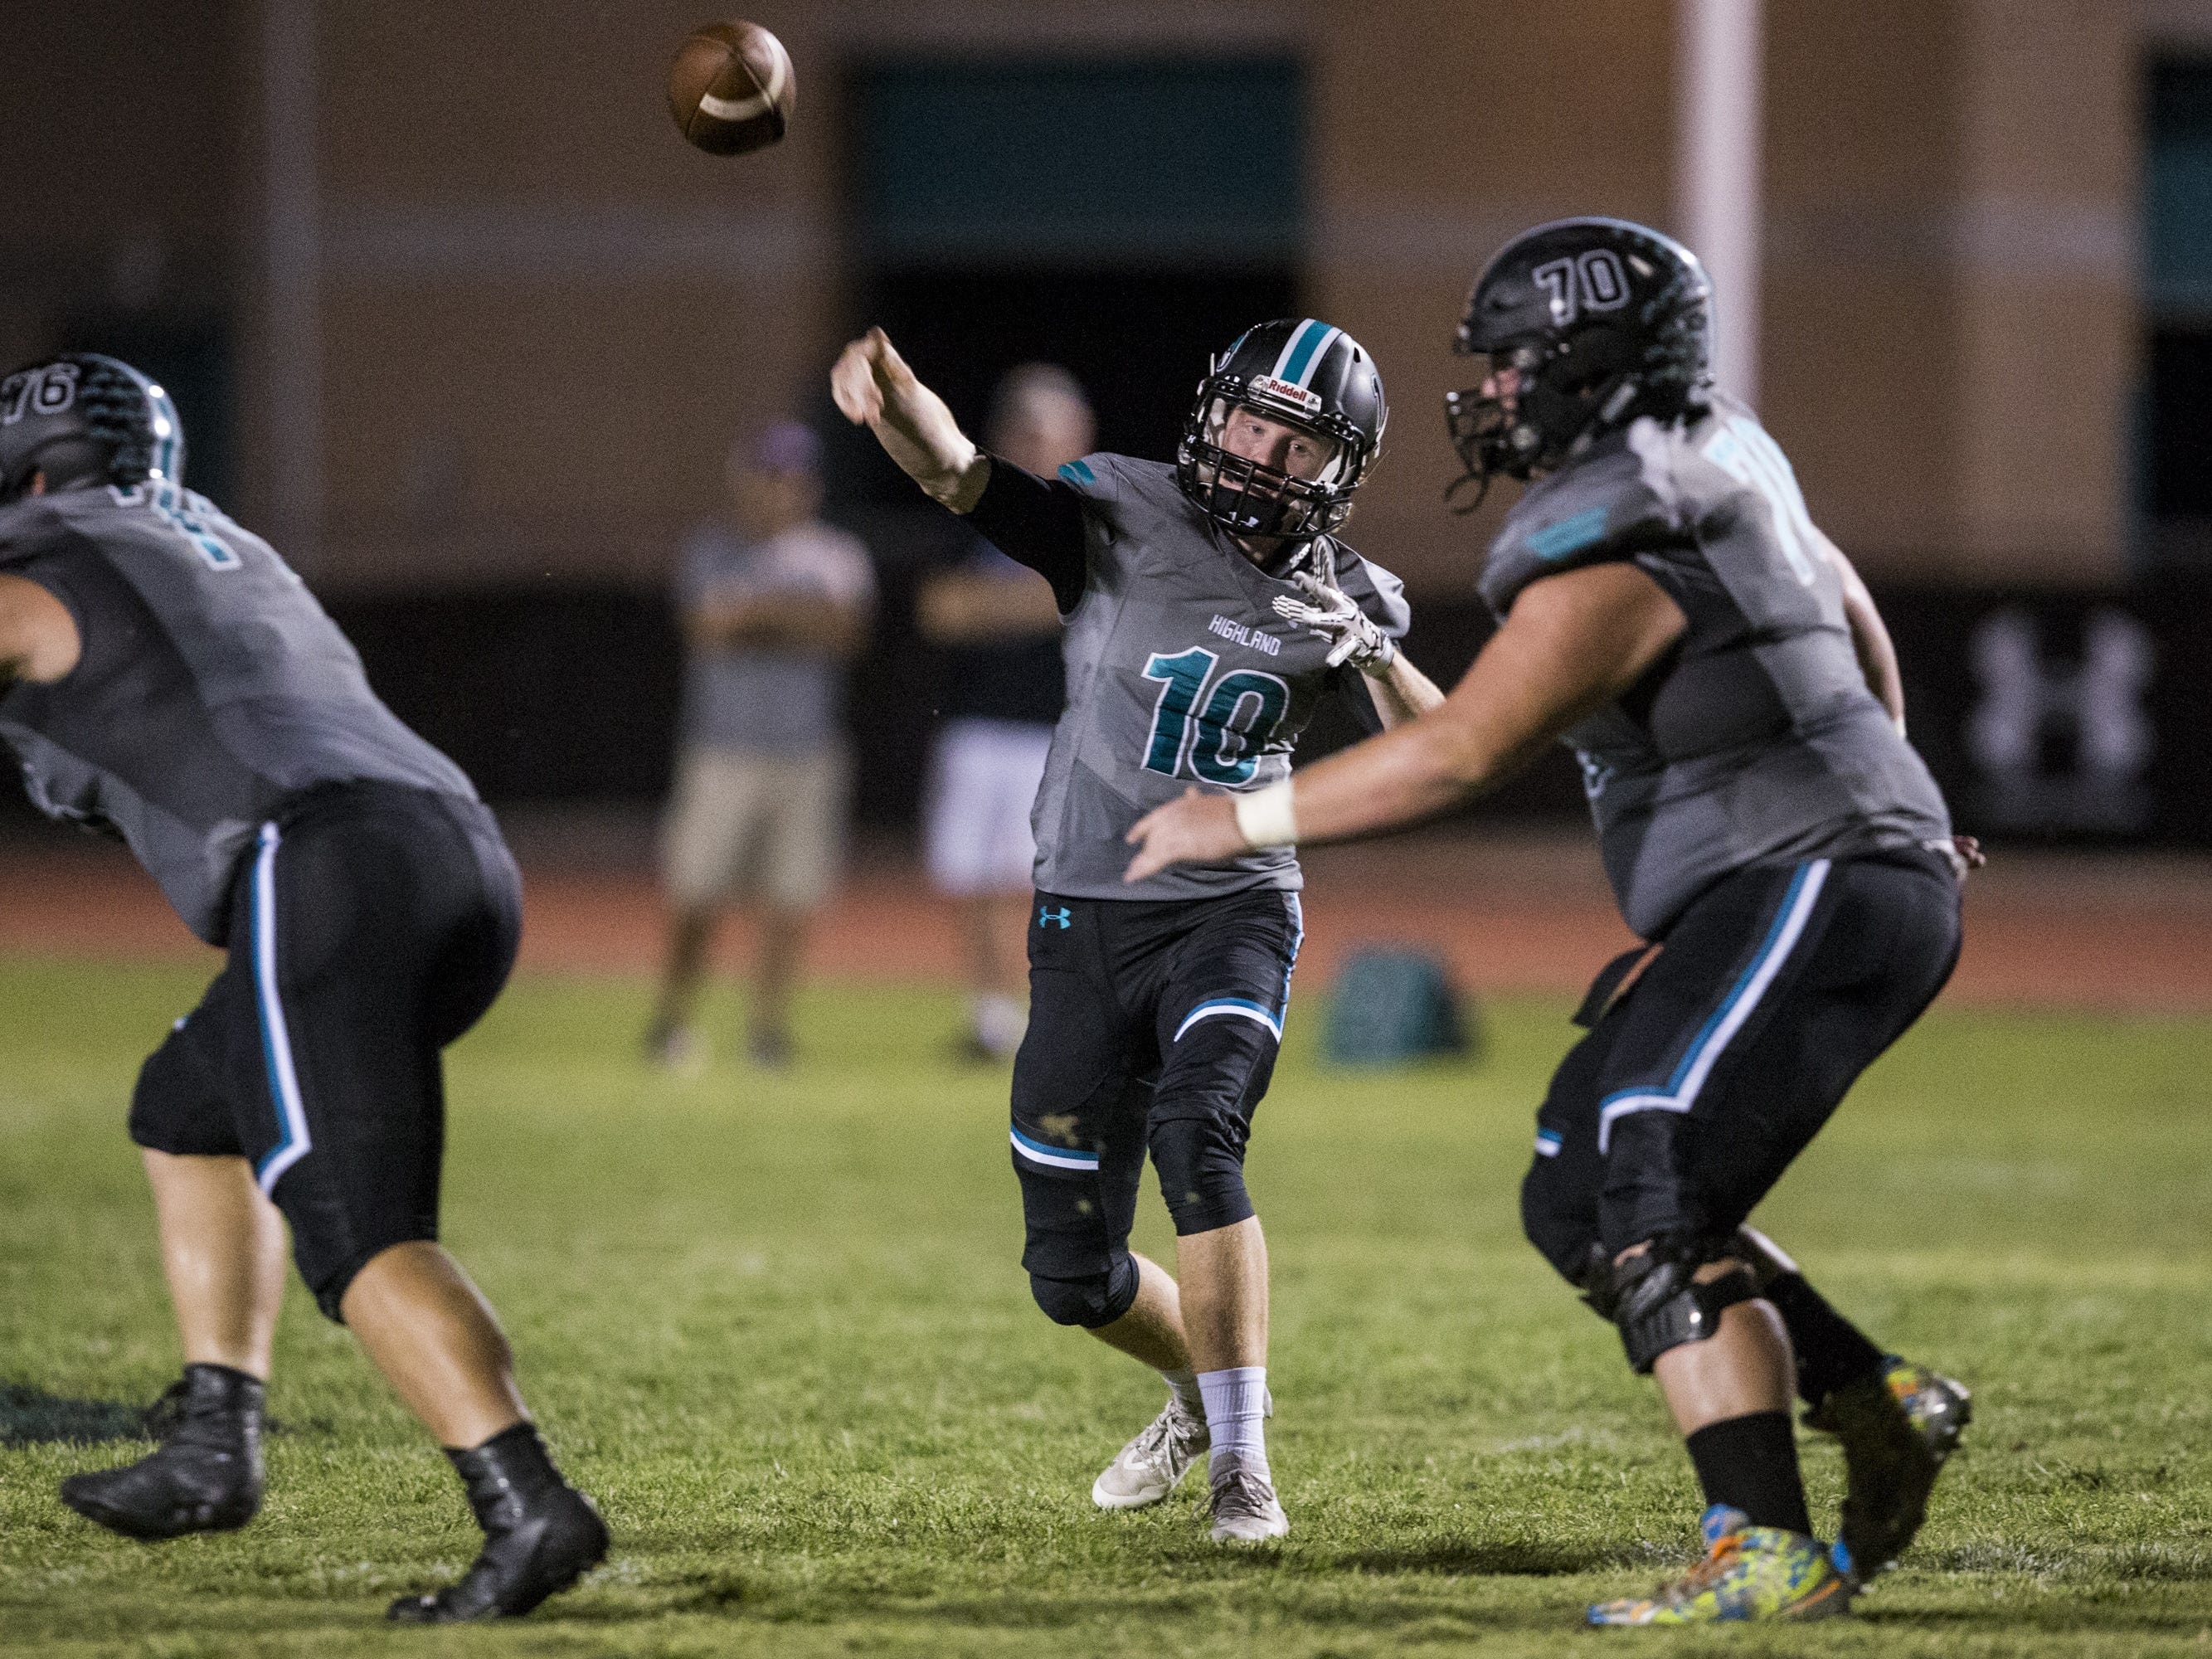 Highland's Kaleb Herbert throws against Desert Vista in the 2nd quarter on Friday, Sept. 21, 2018, at Highland High School in Gilbert, Ariz.   #azhsfb